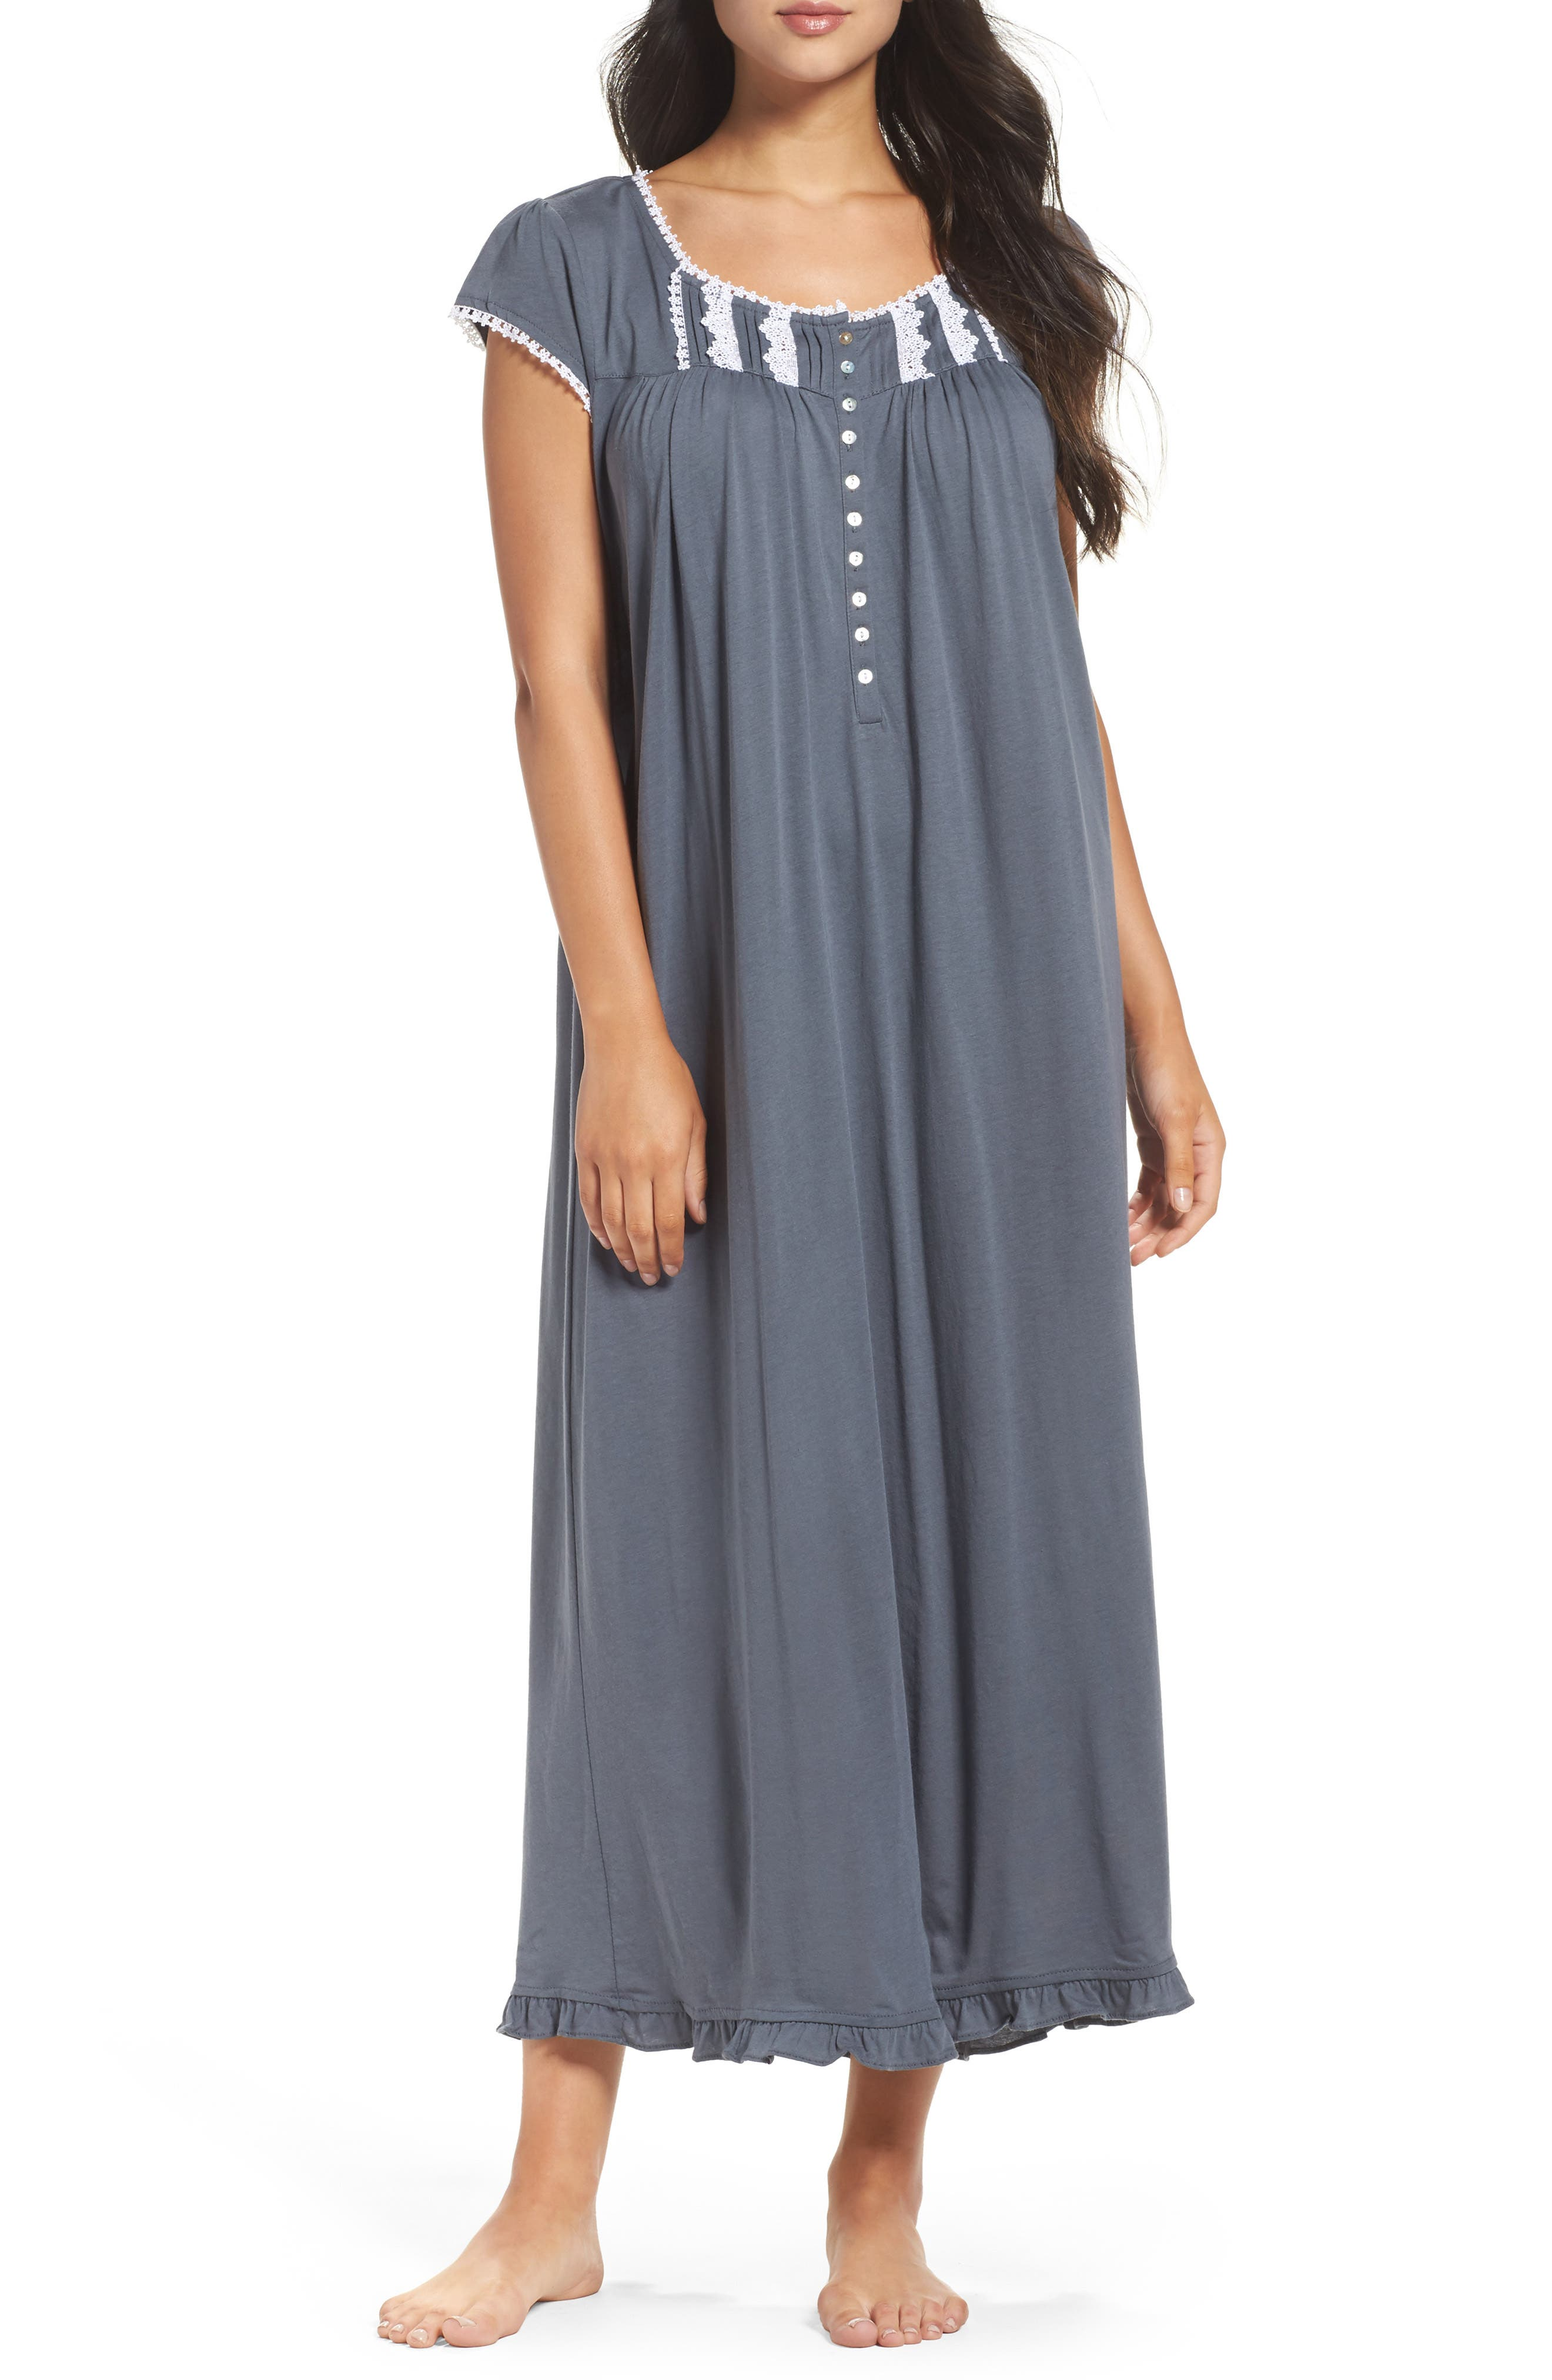 Cotton & Modal Ballet Nightgown,                             Main thumbnail 1, color,                             001